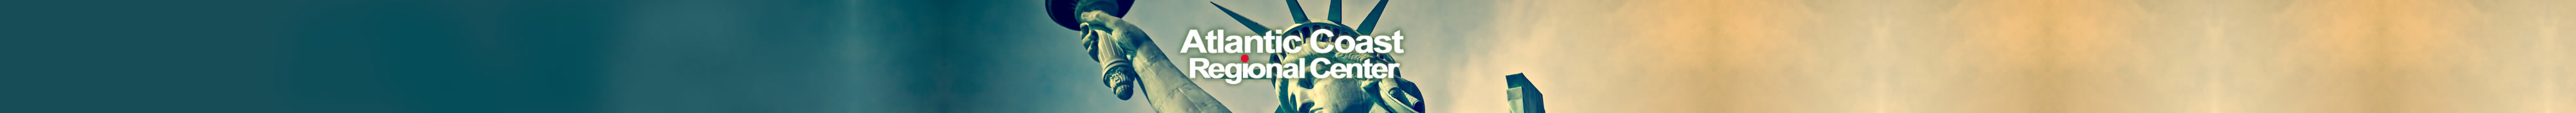 Atlantic Coast Regional Center header close-up of Statue of Liberty head and torch.